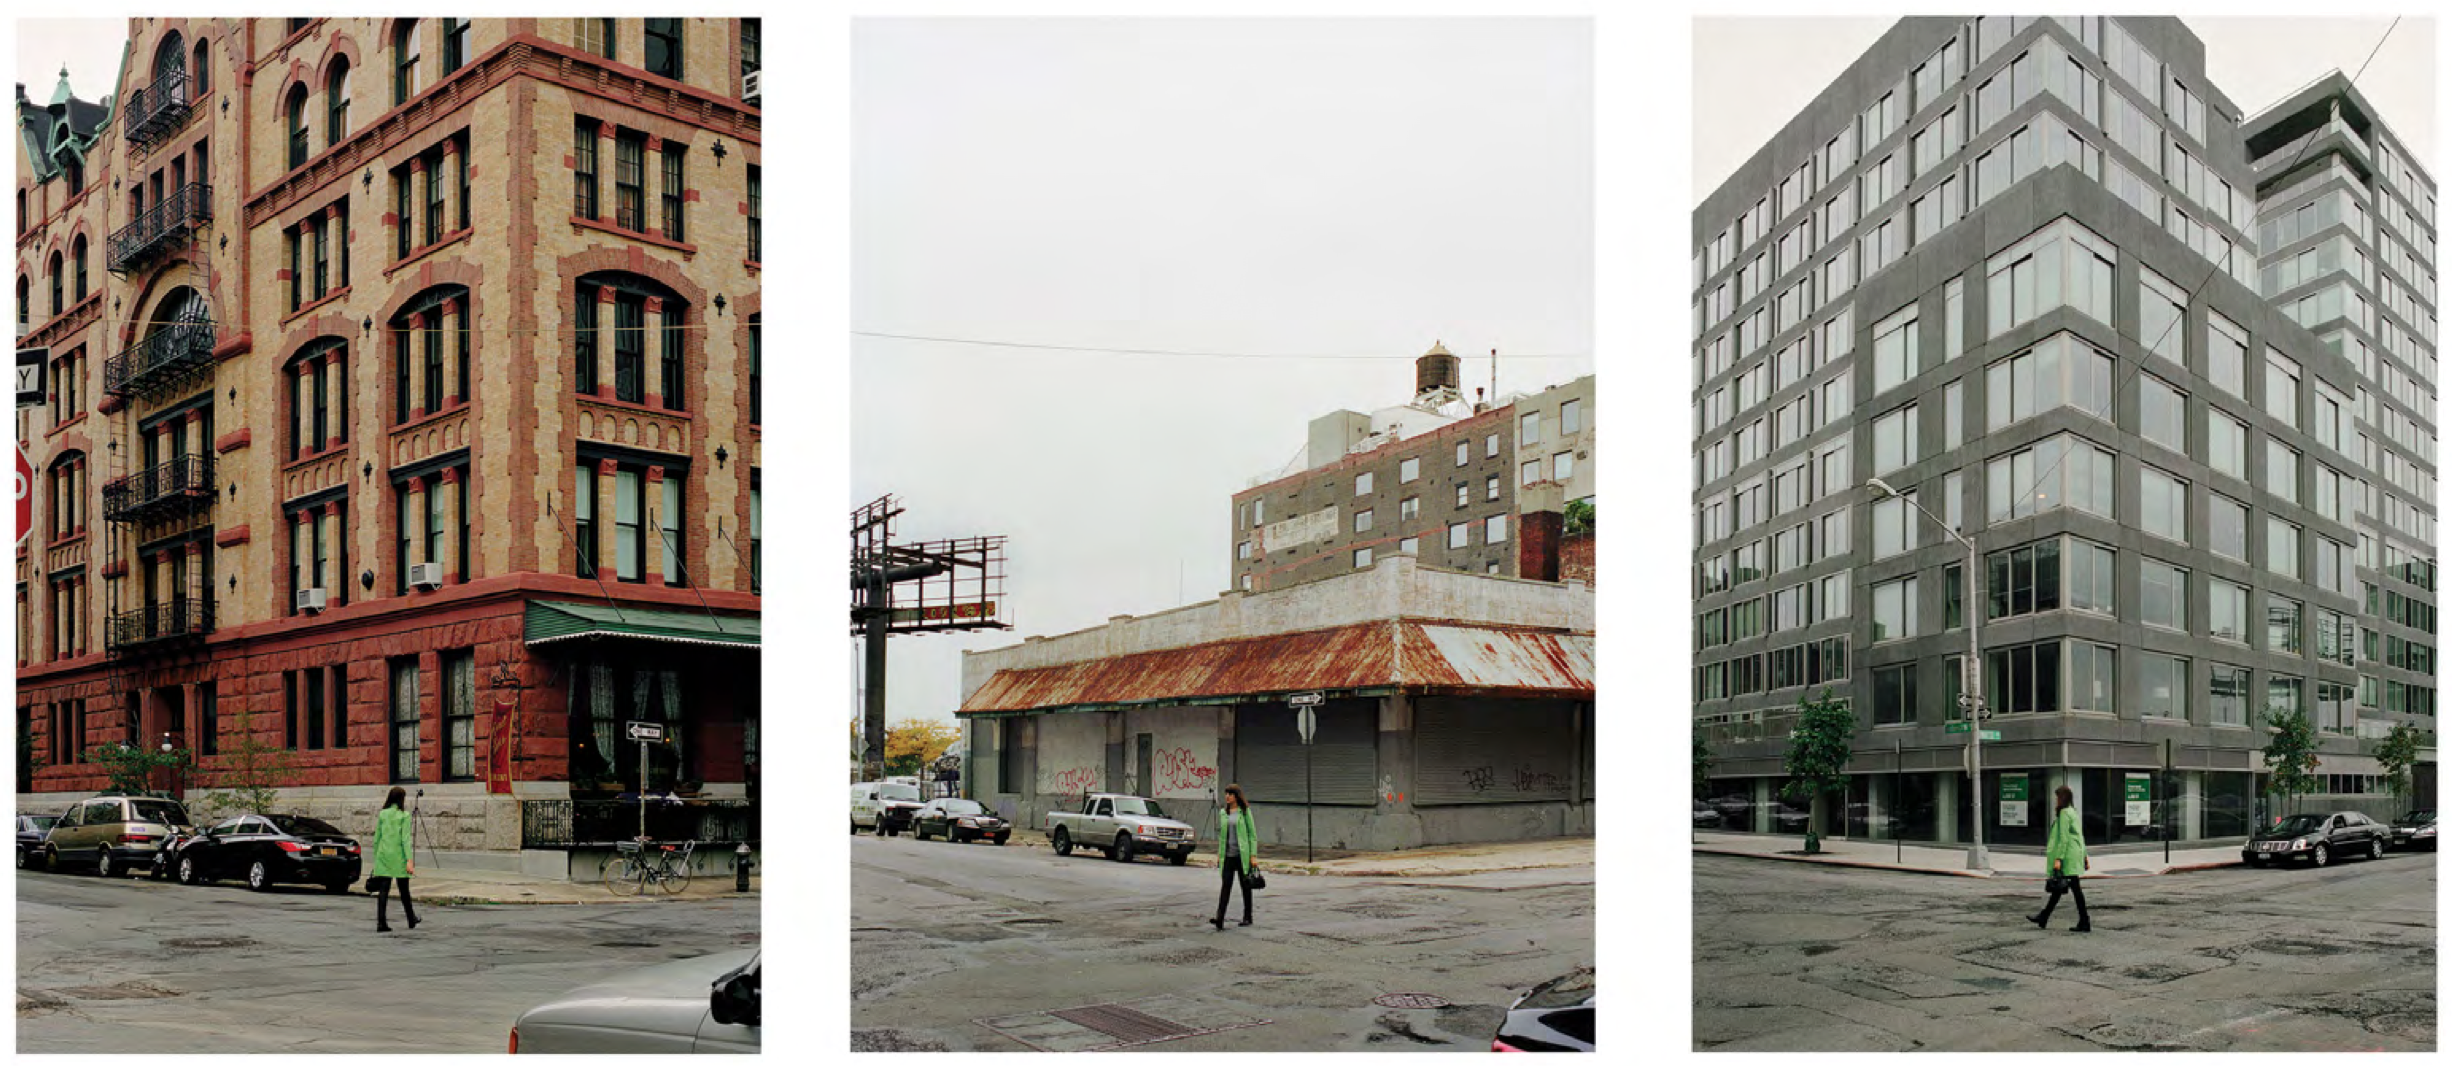 Barbara Probst, Exposure #94: N.Y.C., Washington & Watts Streets, 10.18.11, 1:02 p.m., 2011. Ultrachrome ink on cotton paper, 3 parts, 61 x 44 inches each. Courtesy of Murray Guy.